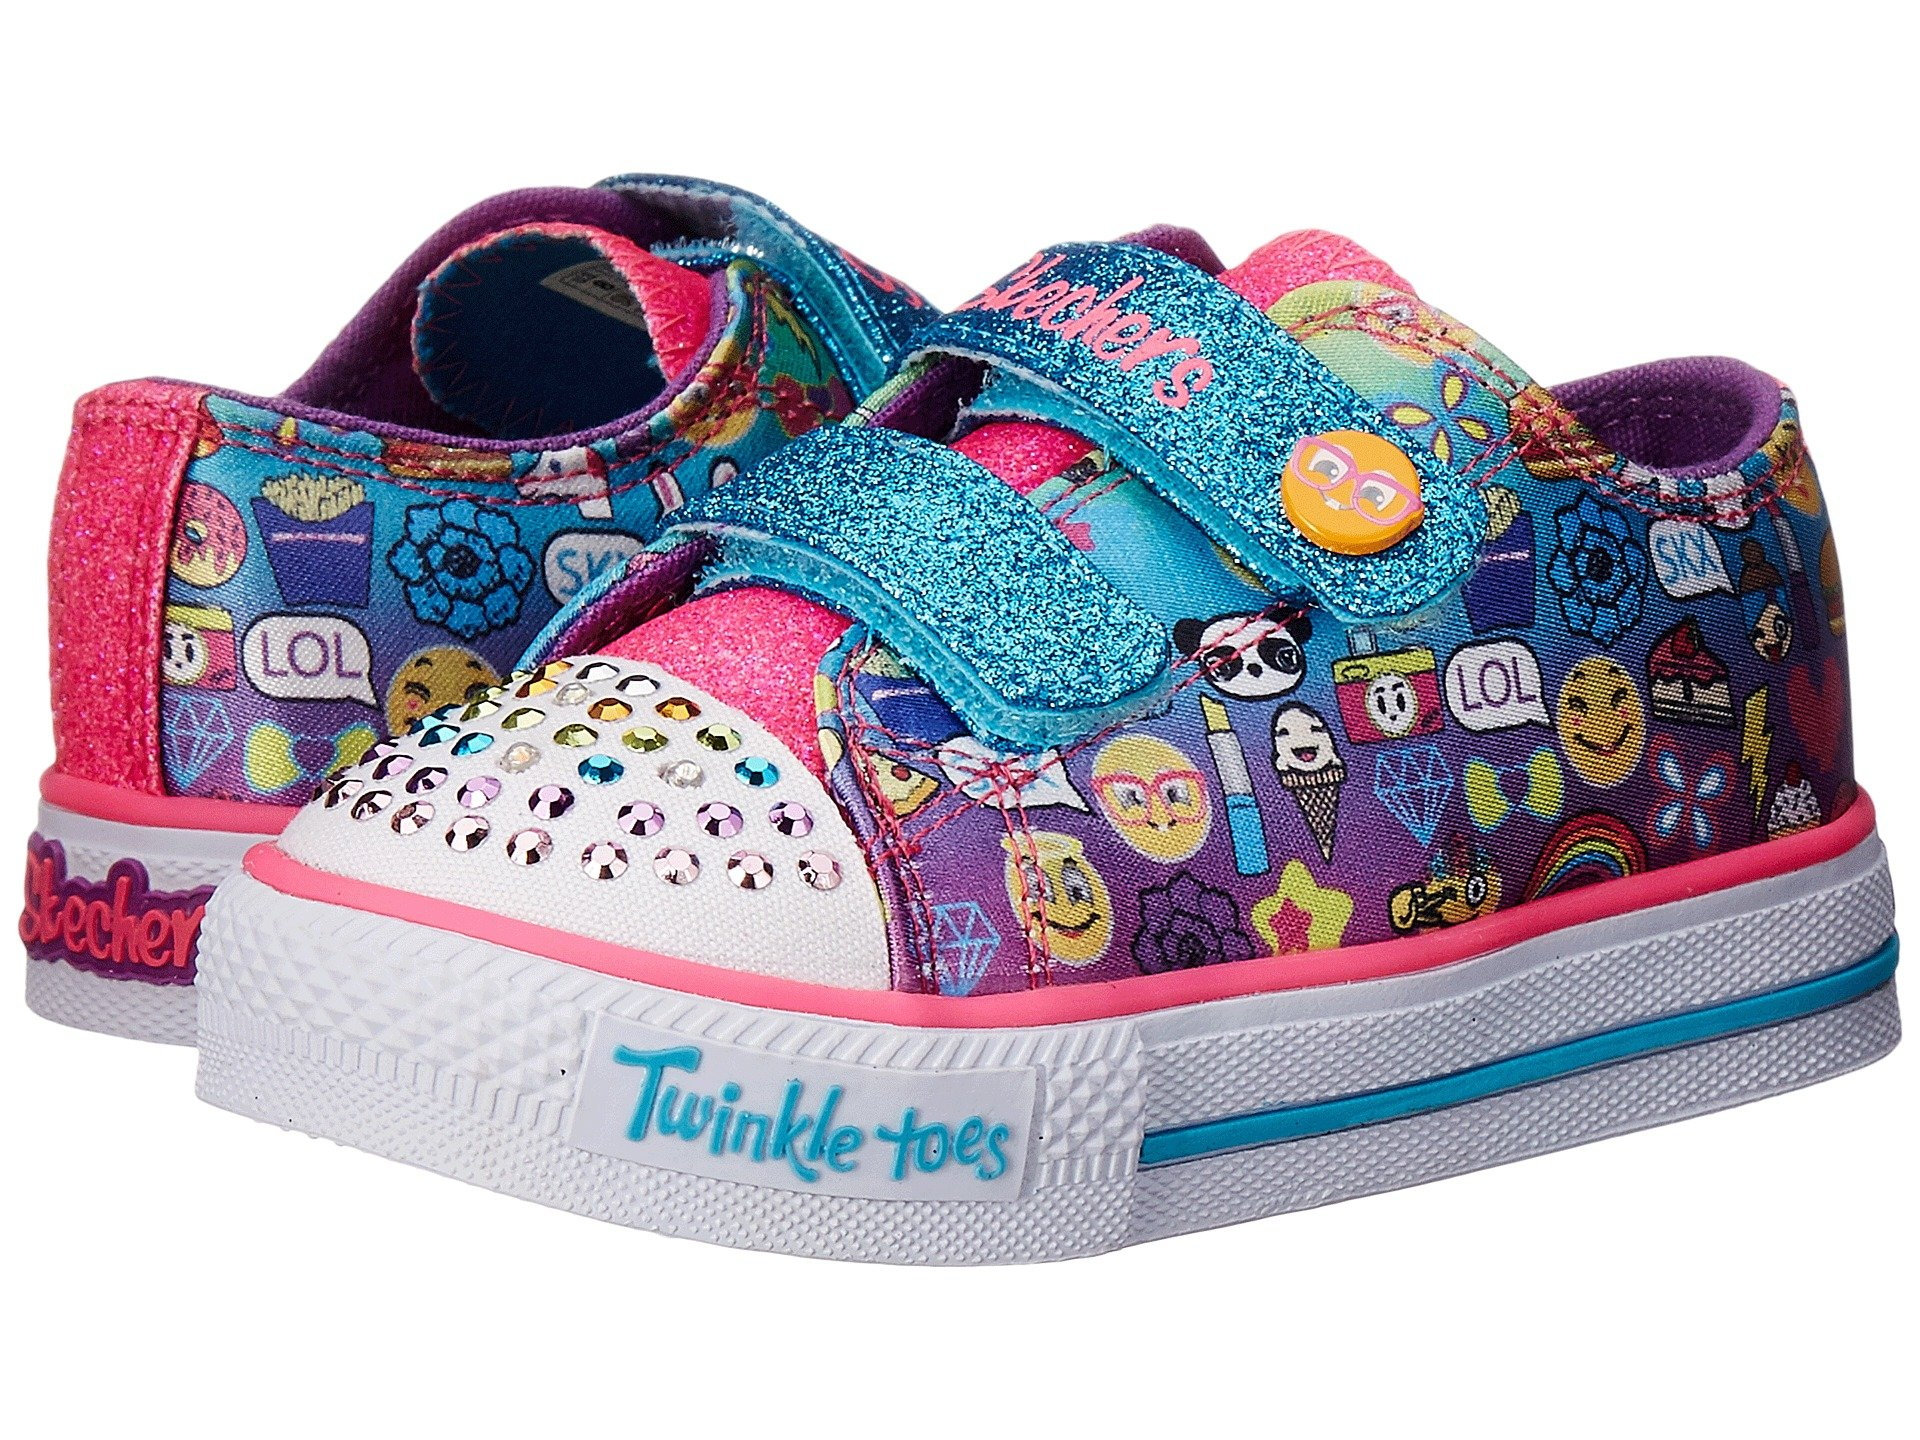 PAIR ...  sc 1 st  6PM.com & SKECHERS KIDS Twinkle Toes-Pixel Time 10680N Lights (Toddler) at 6pm azcodes.com